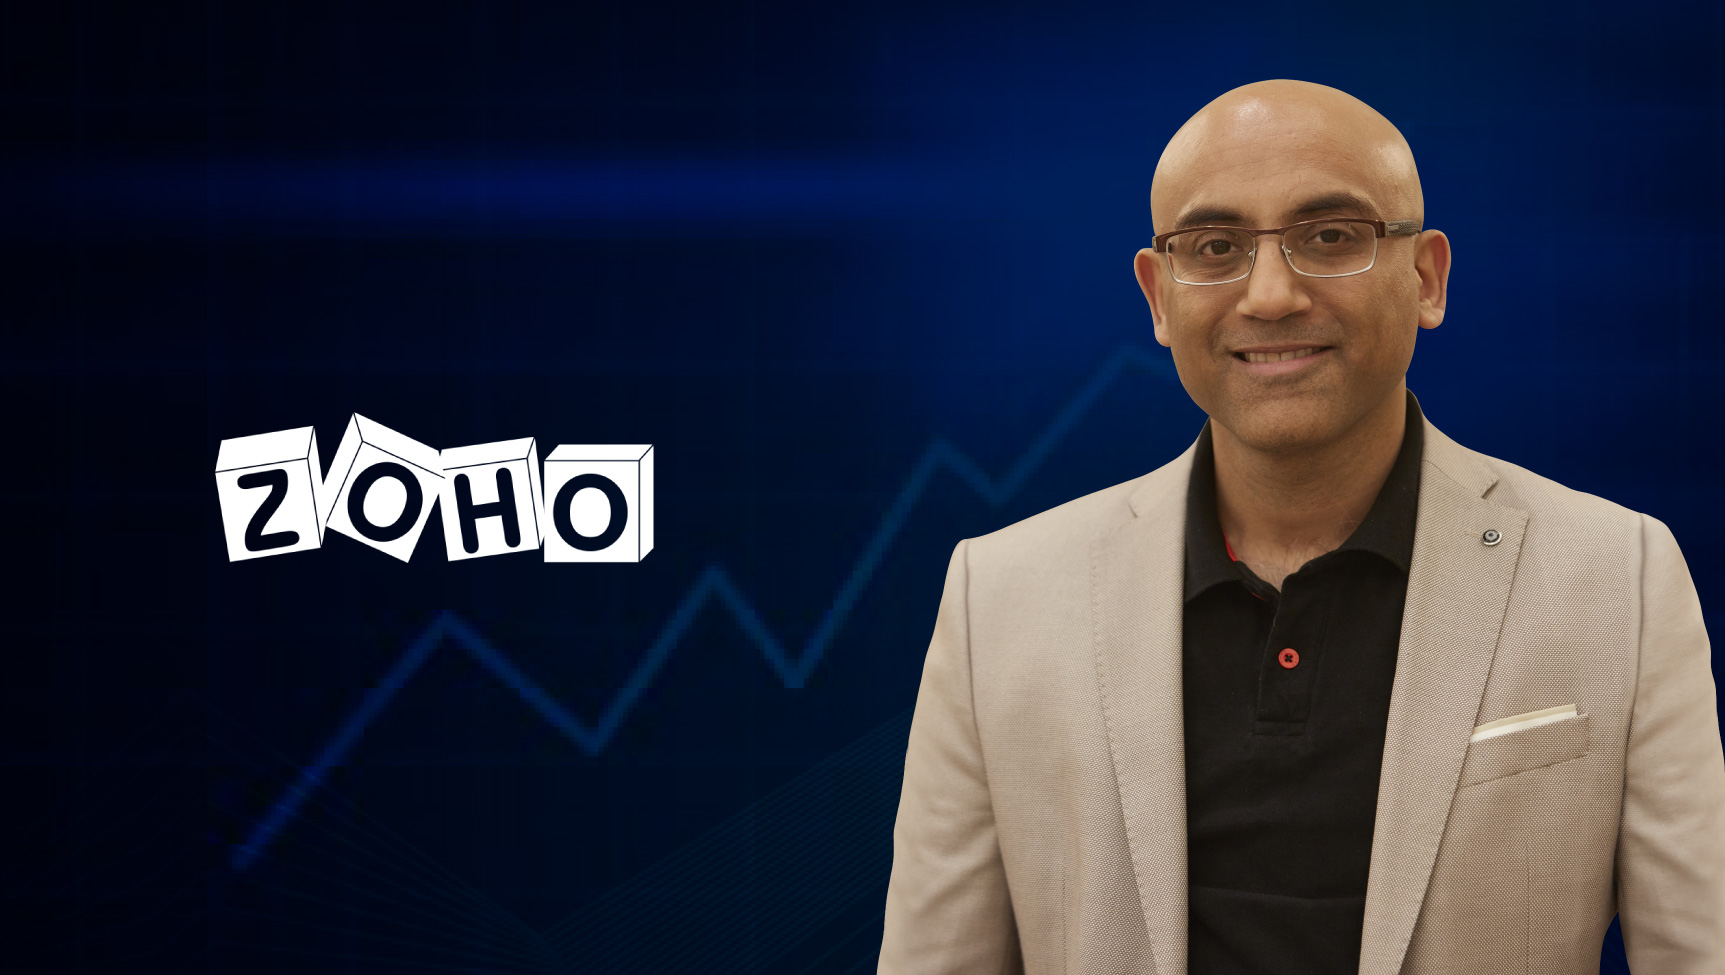 SalesTech Star Interview with Sridhar Iyengar, Managing Director at Zoho Europe